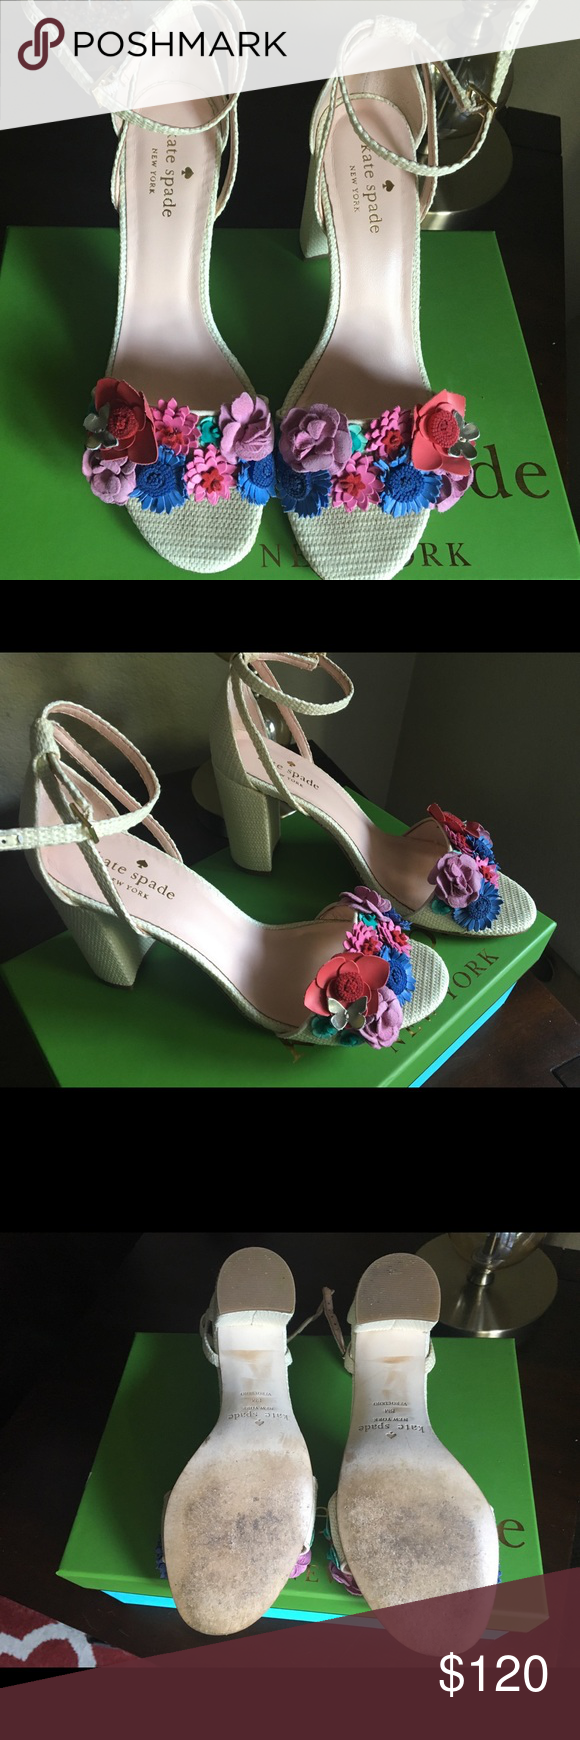 75bb9ff669a7 Kate Spade New York Obelli Dress Sandals Beautiful dress sandals great for  causal or special occasions! Only worn once to a wedding.